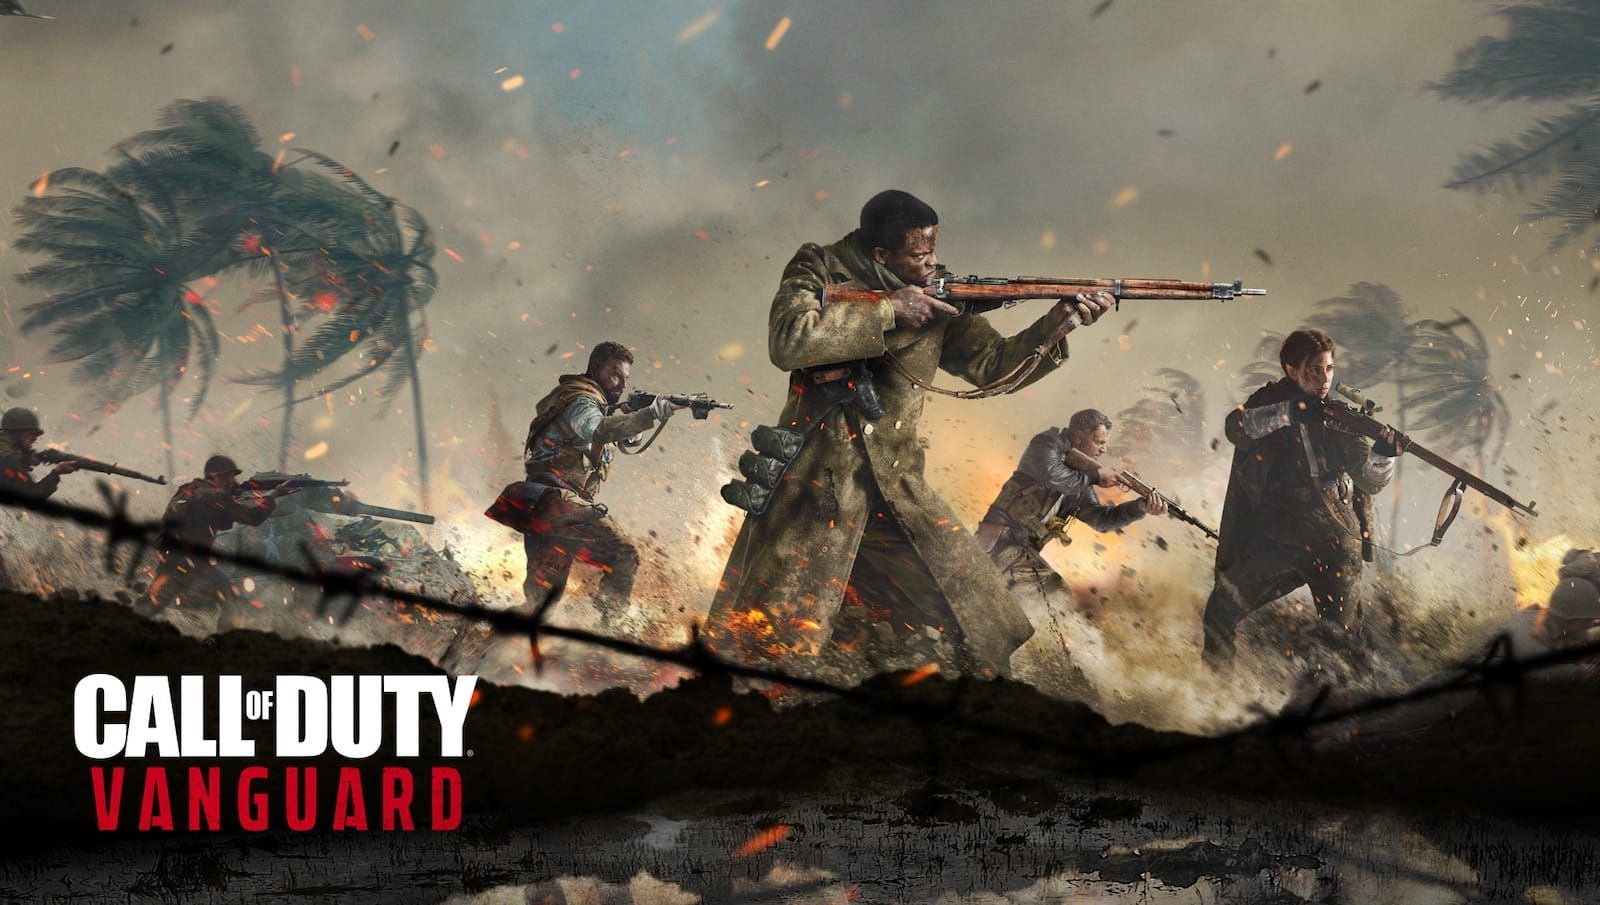 Image from Call of Duty Vanguard game showing WWII era soldiers with guns pointed moving to the right